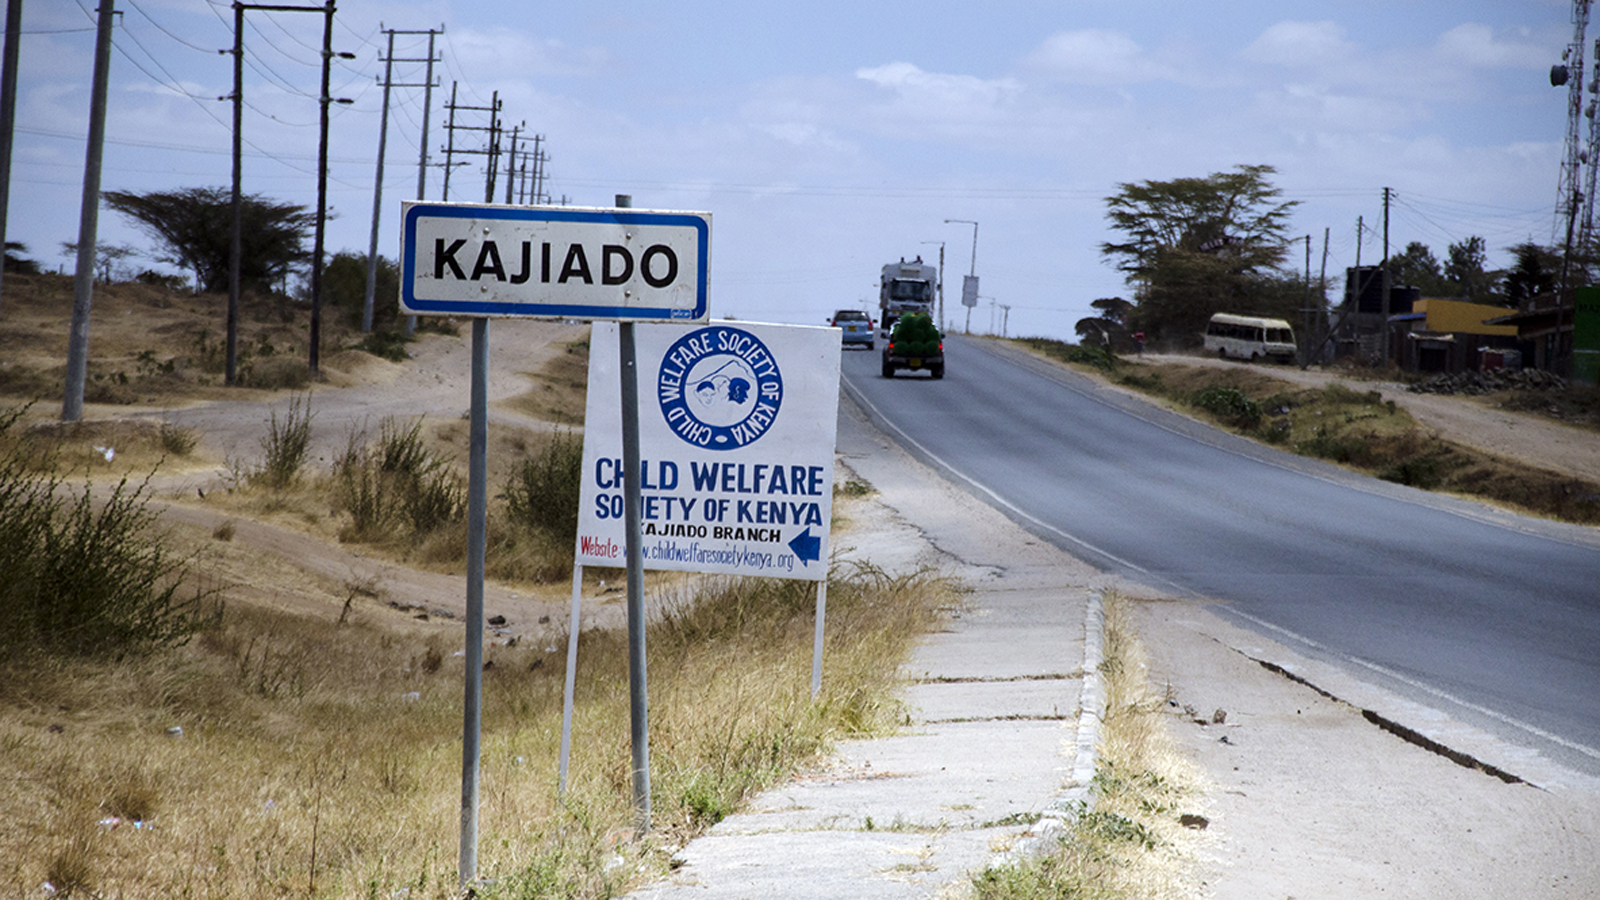 takeda_at_ticad_visit_to_kajiado_county_block_001